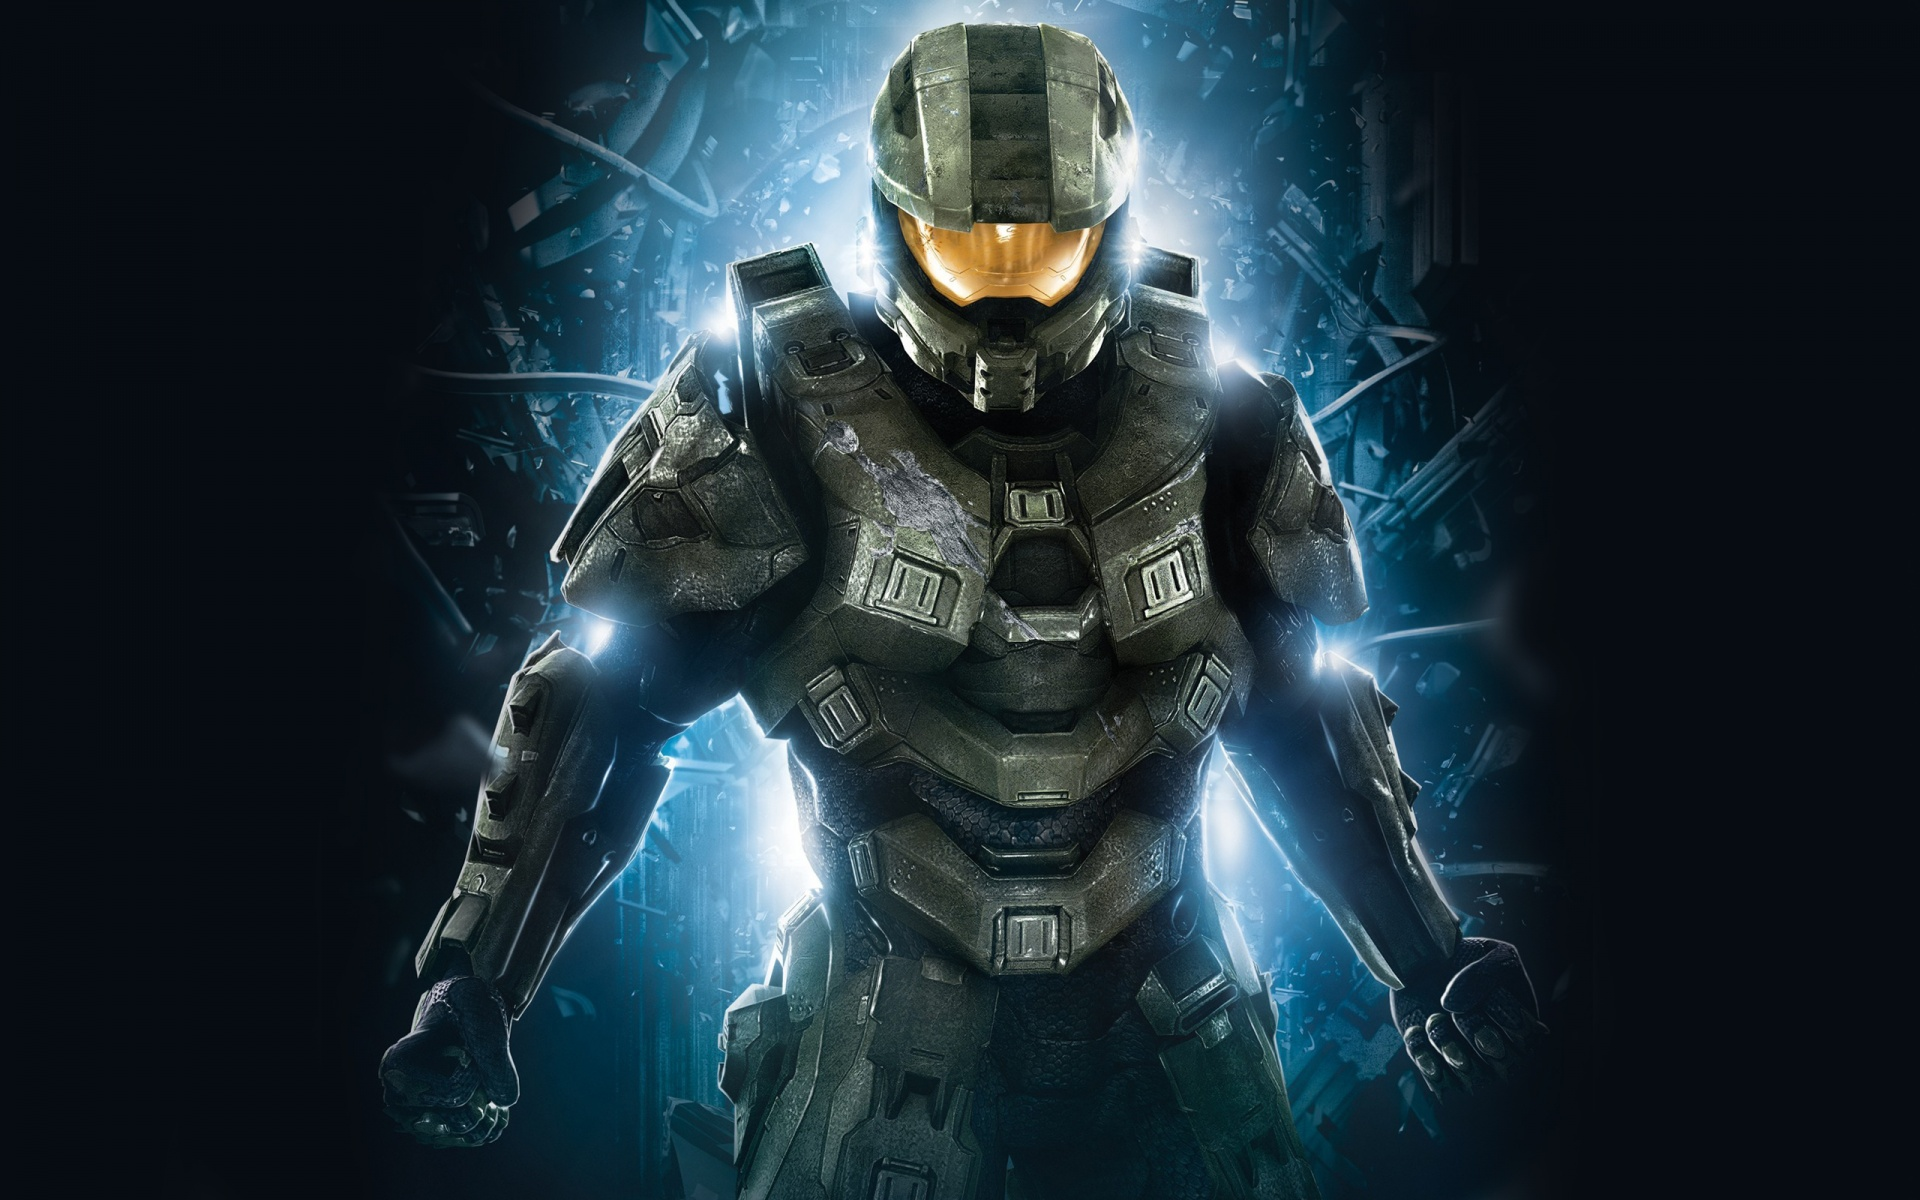 master_chief_in_halo_4-1920x1200